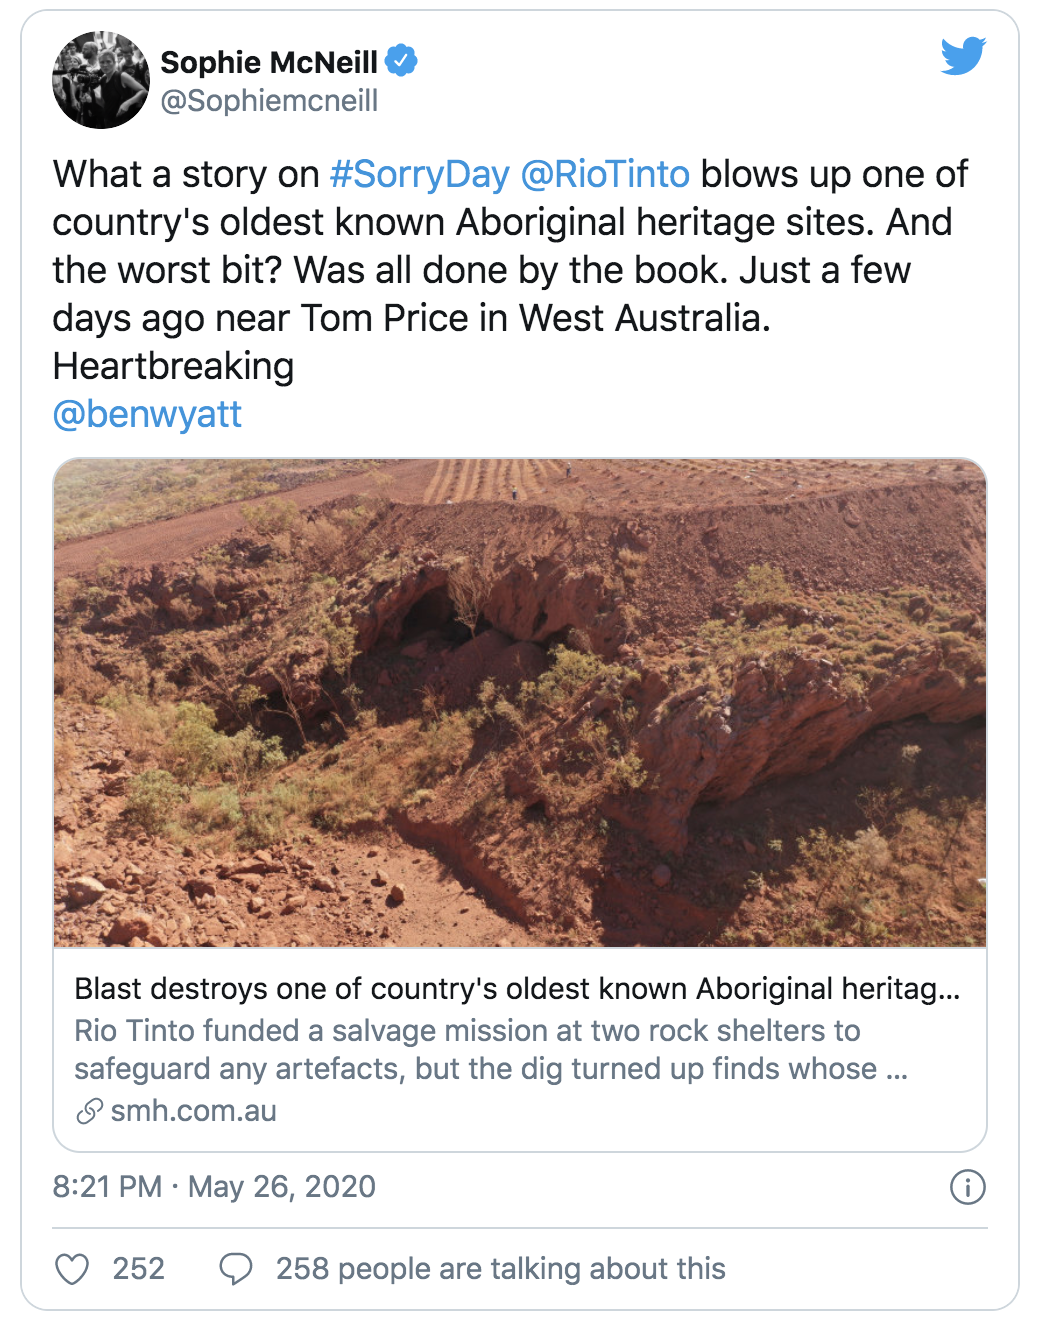 On the eve of Reconciliation Week. Rio Tinto just blasted away an ancient 46,000 year old Aboriginal site. Here's why that was allowed